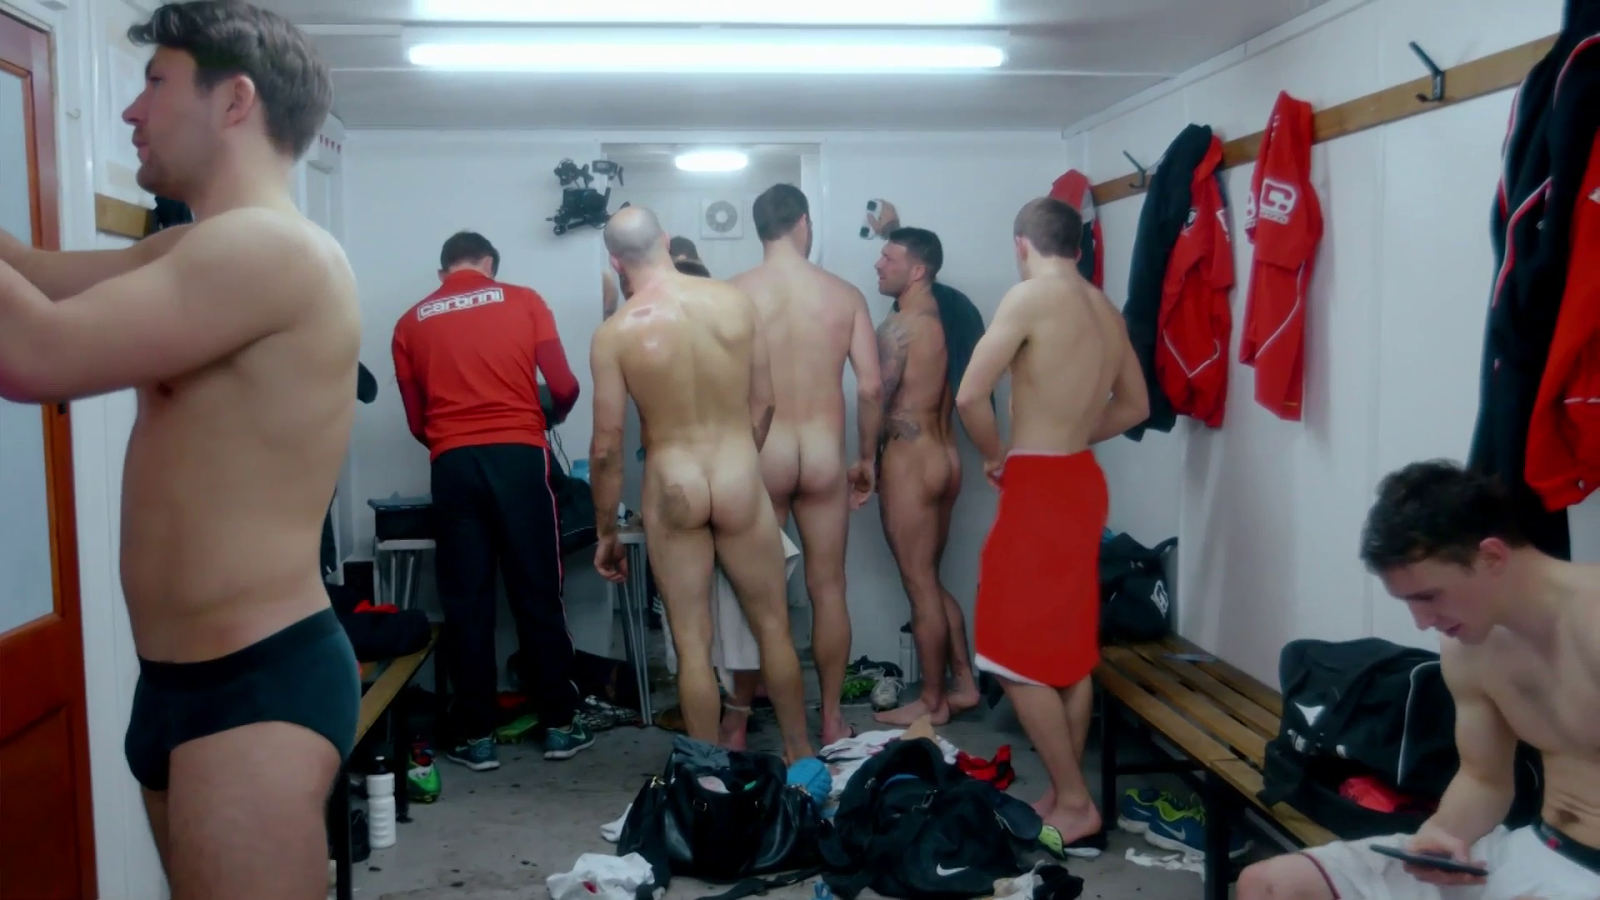 Know, Locker room nude ass interesting. Prompt